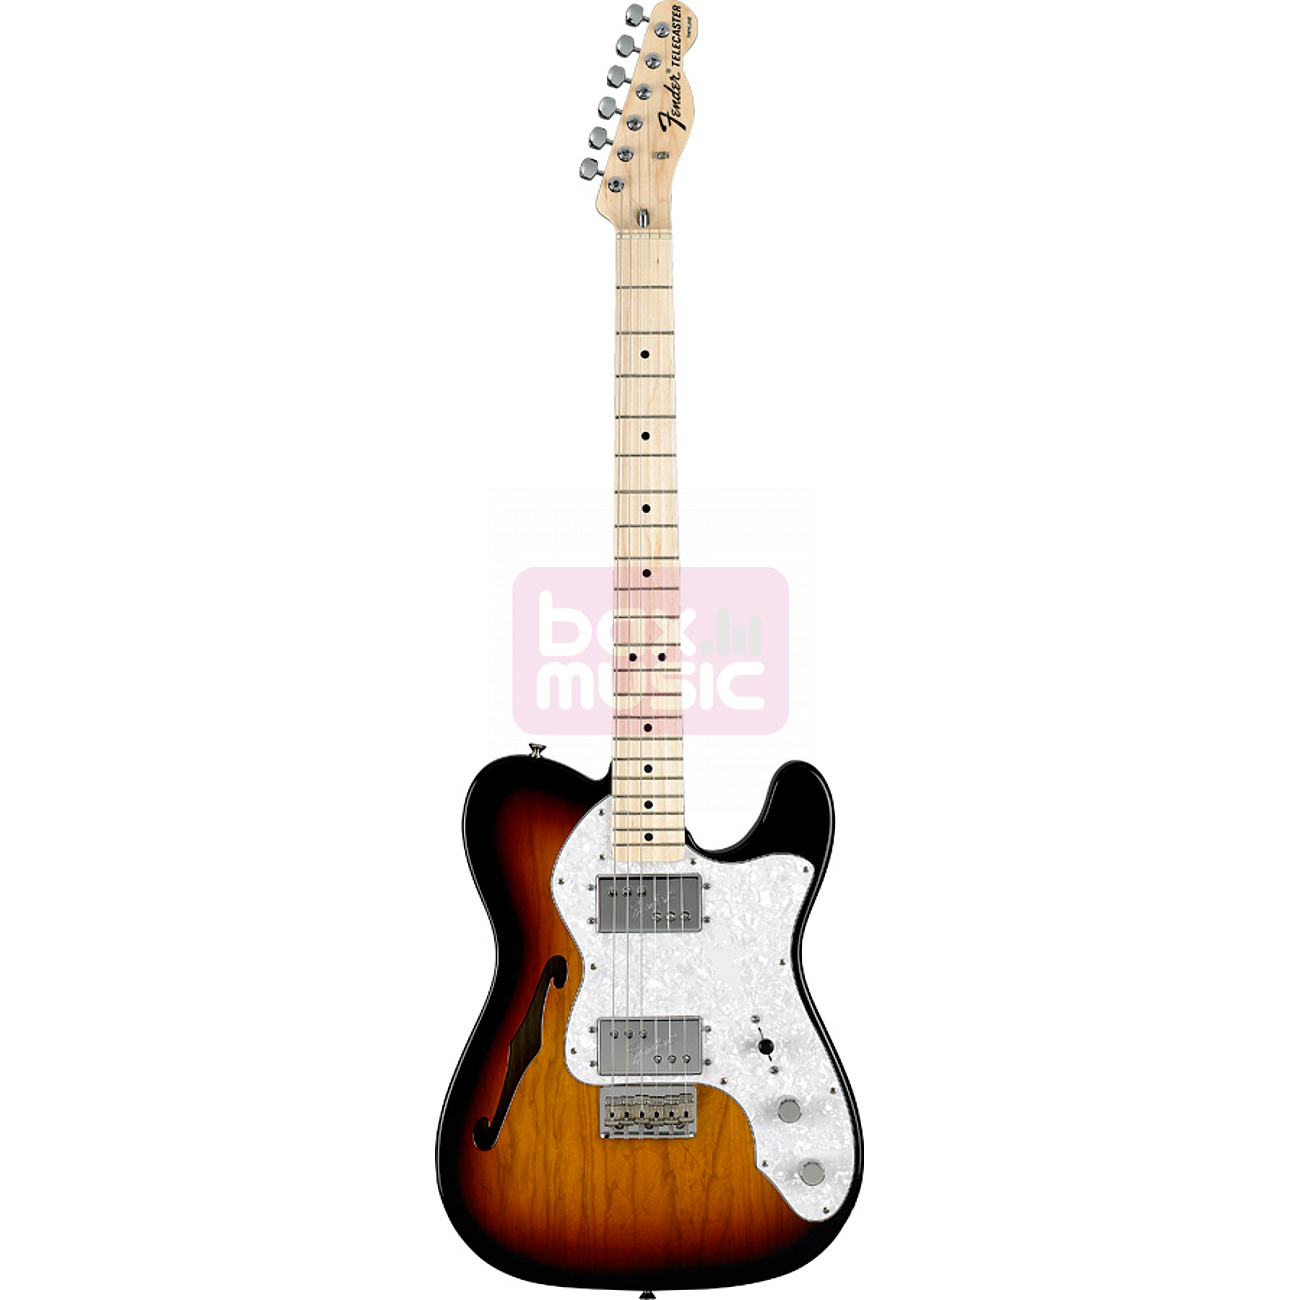 Fender Classic Series 72 Telecaster Thinline 3-Color Sunburst